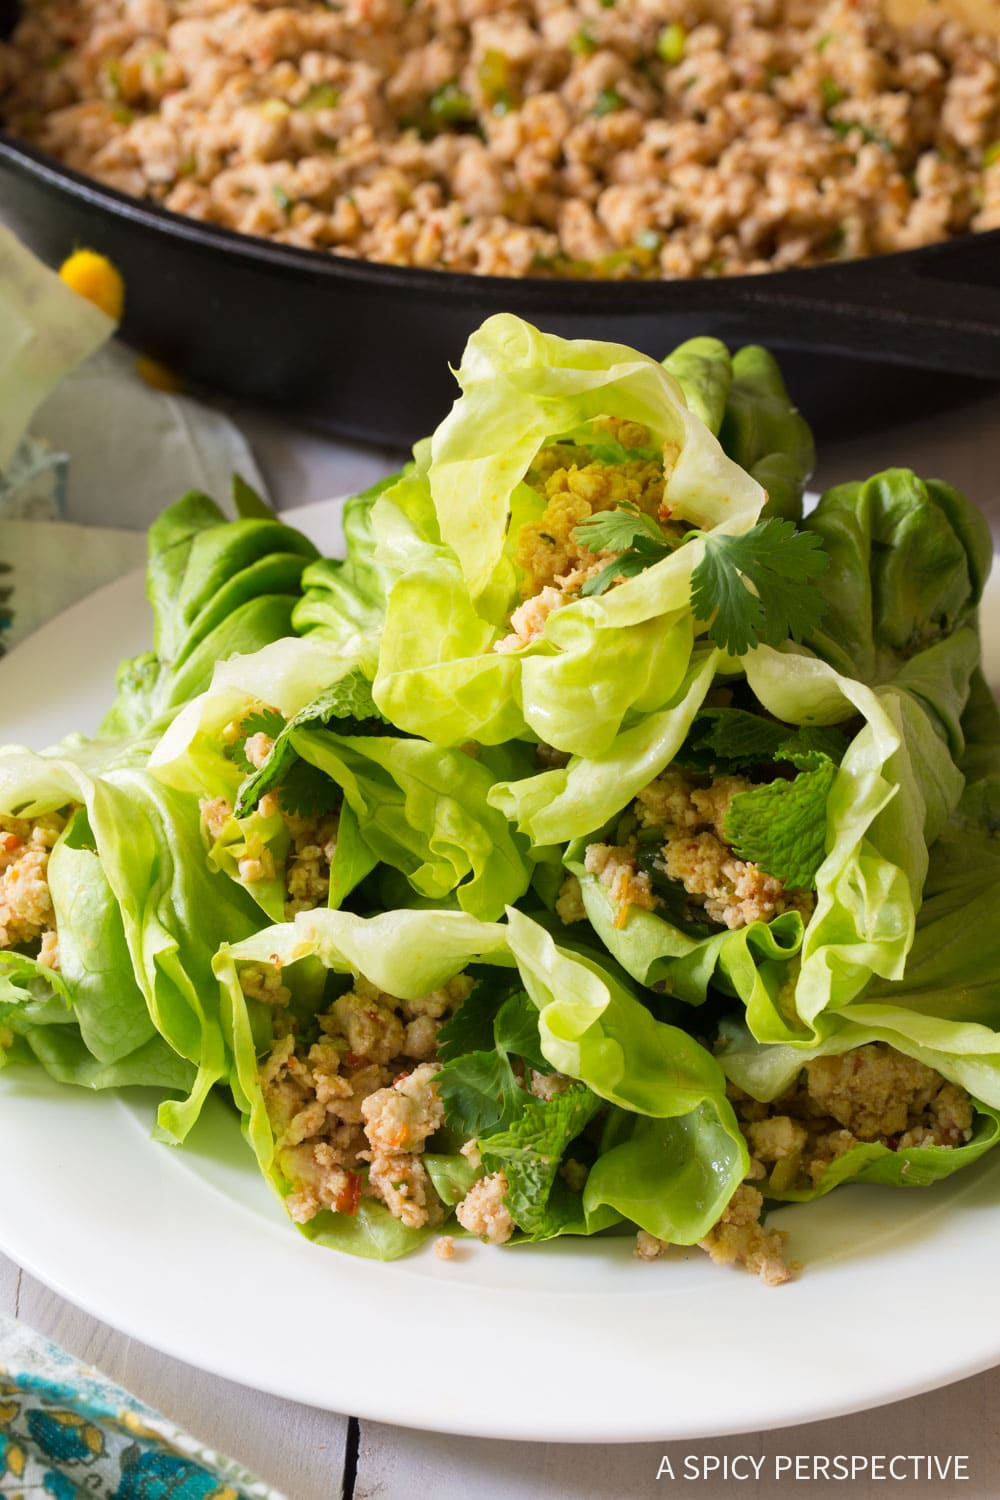 Zesty Keto Thai Larb Rolls Recipe #ASpicyPerspective #ketogenic #paleo